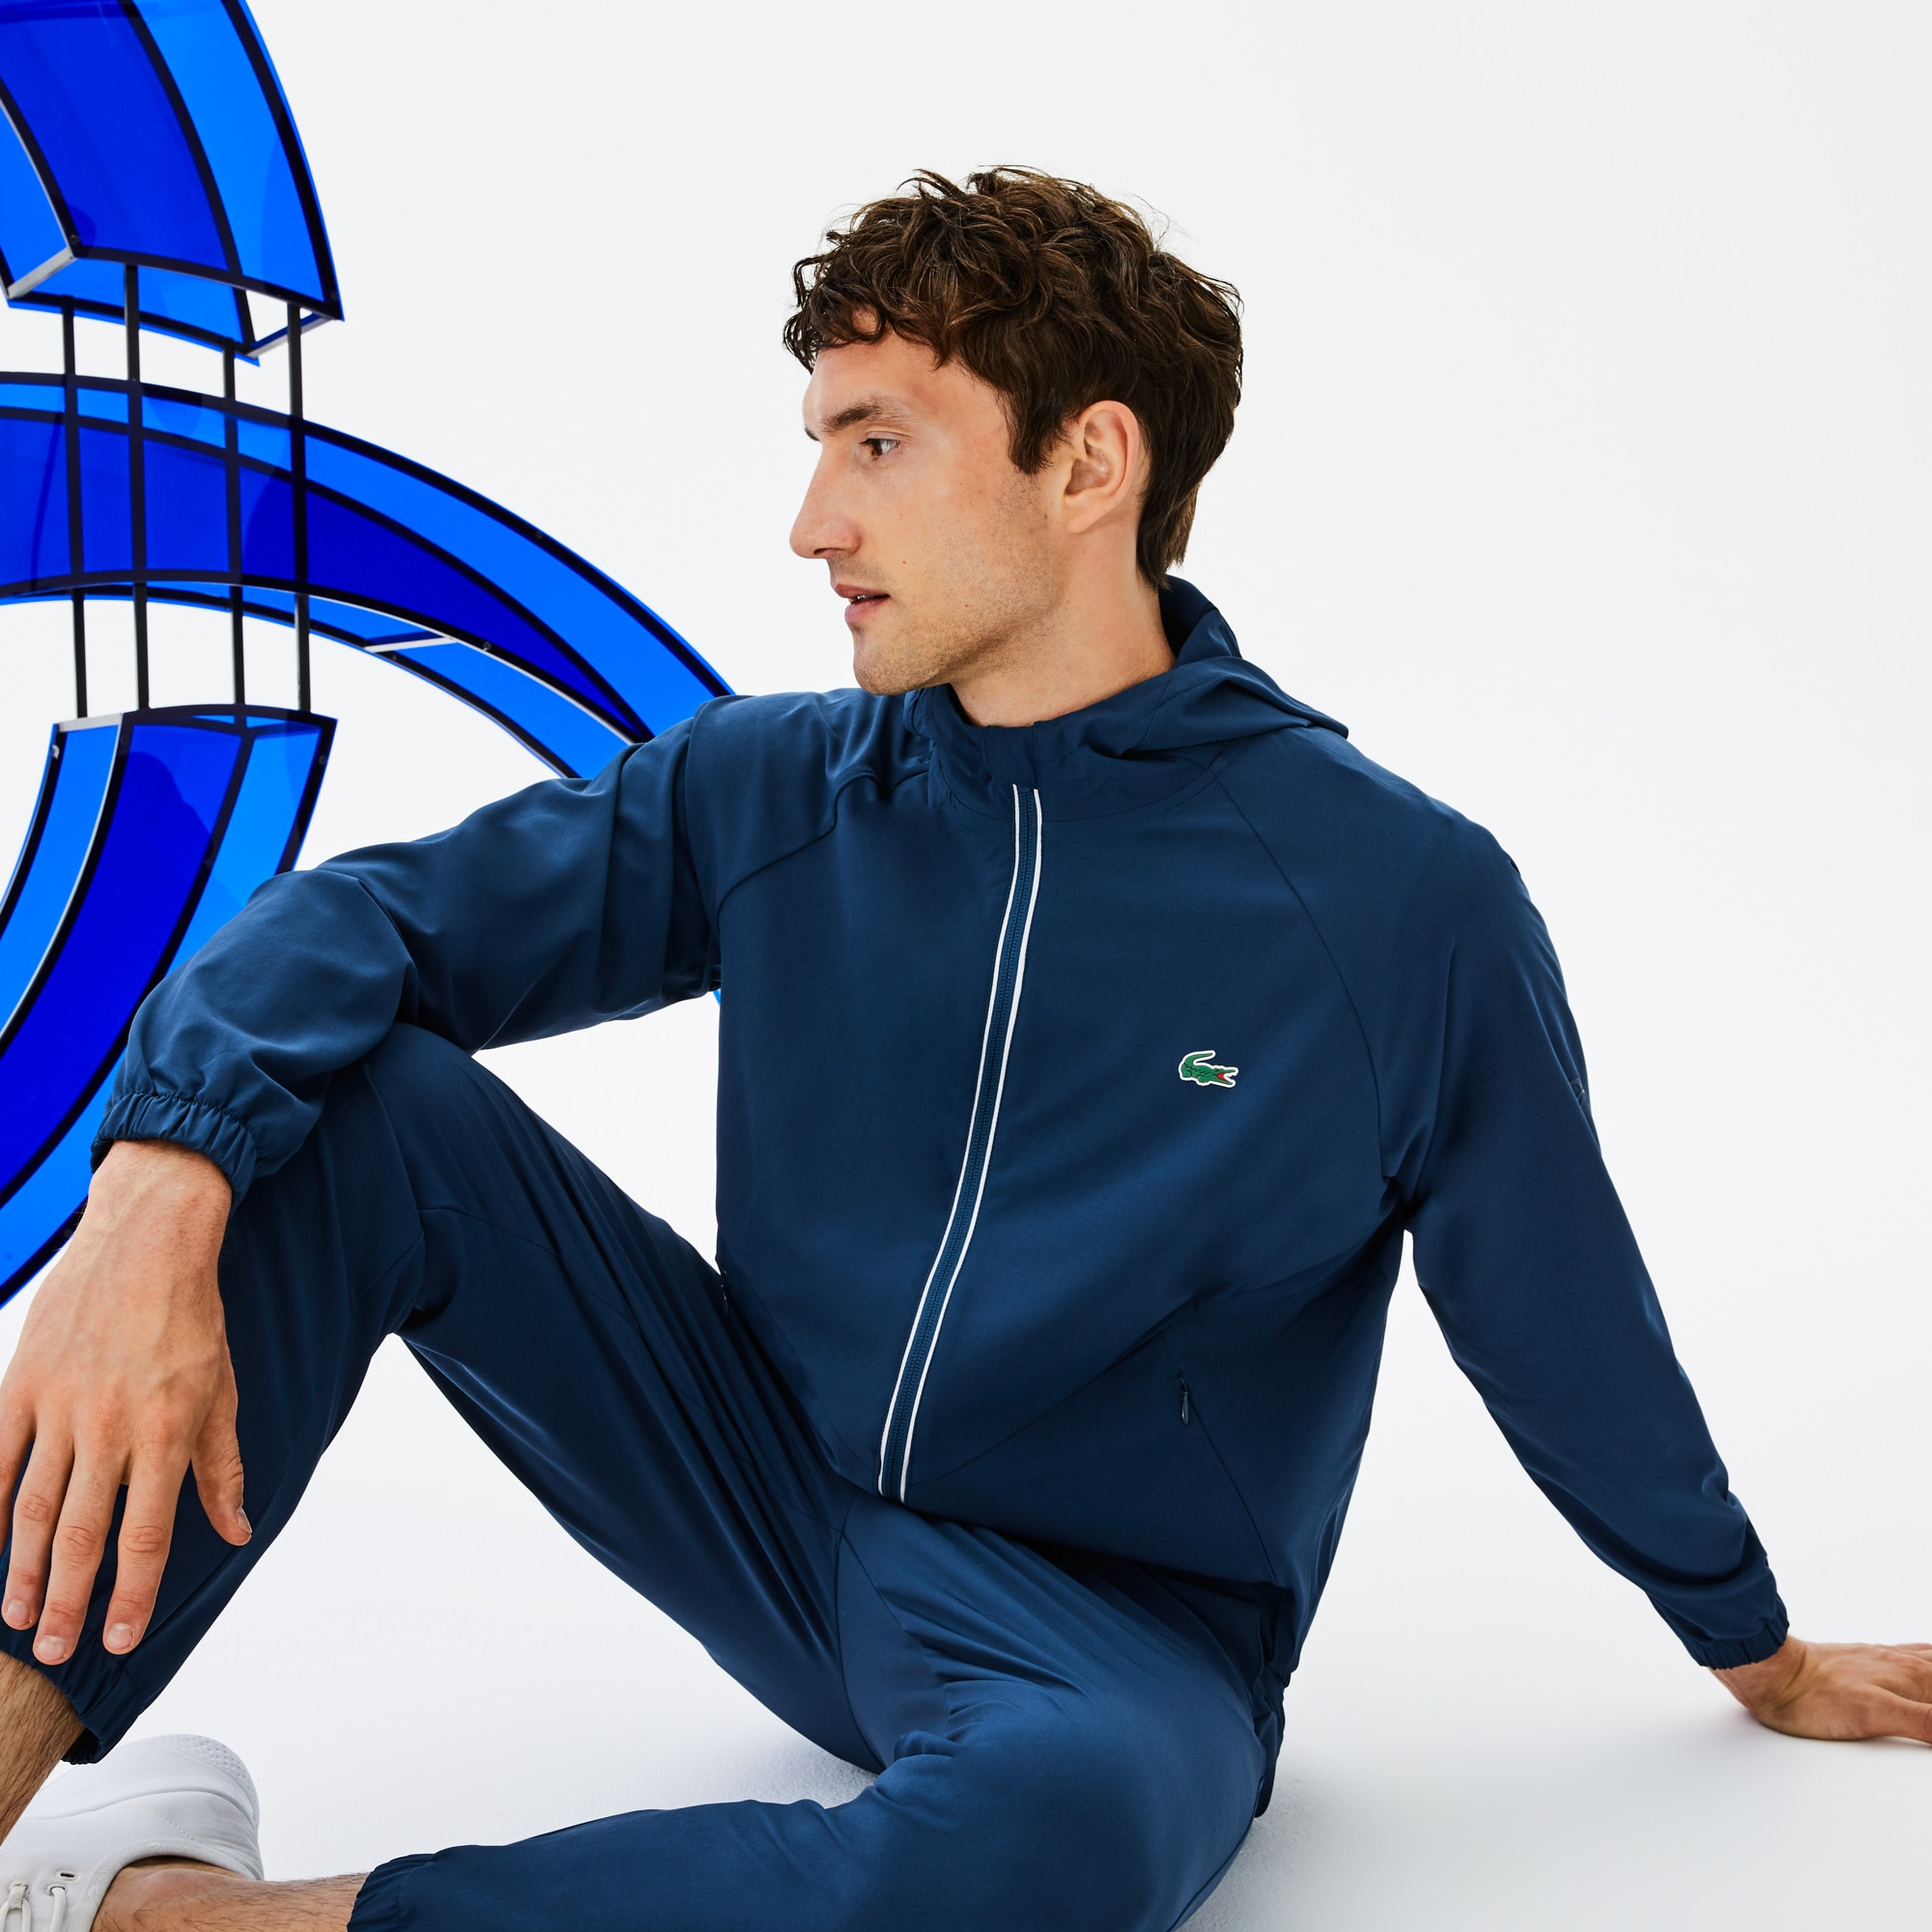 Men's SPORT Hooded Technical Midlayer Jacket -  x Novak Djokovic Off Court Premium Edition